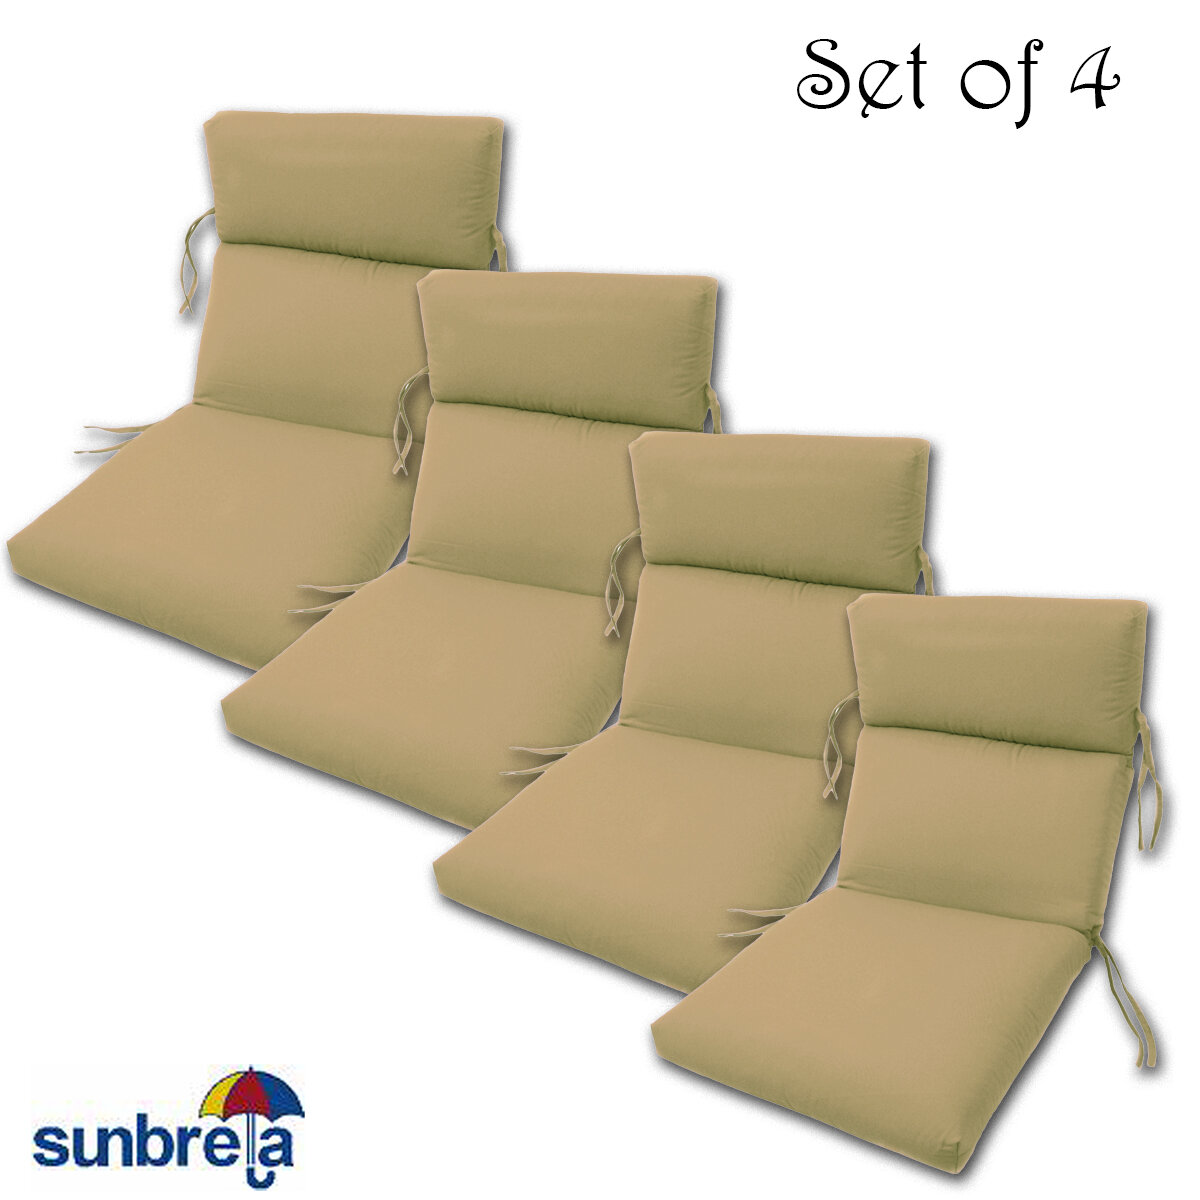 Indoor Outdoor Sunbrella Chair Cushion